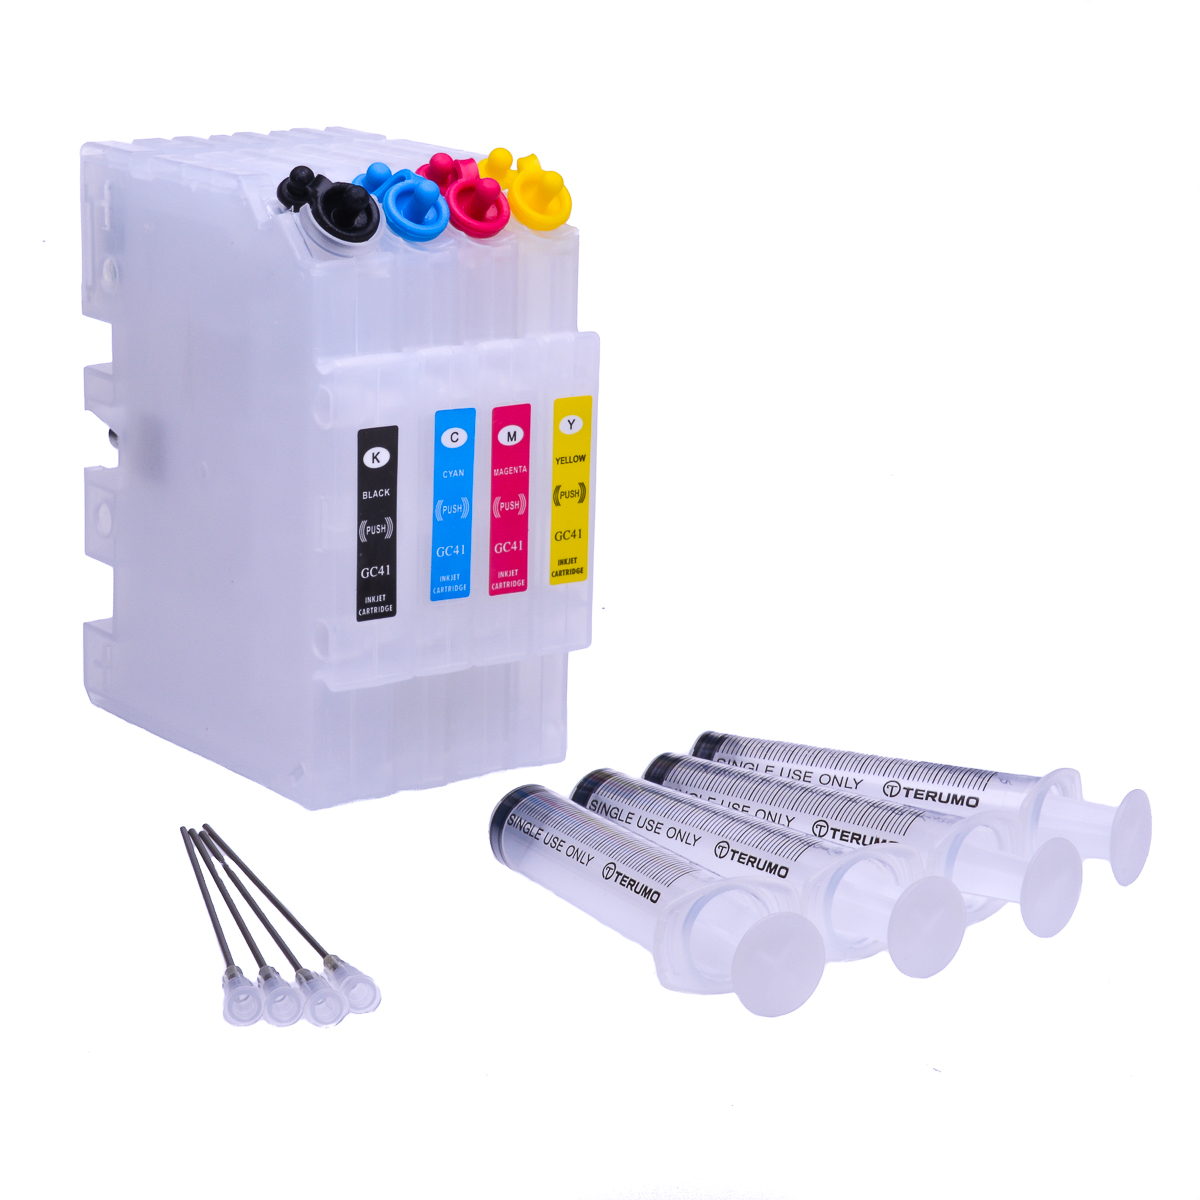 Refillable Sublimation ink cartridge for Ricoh GXe7700N printer #2